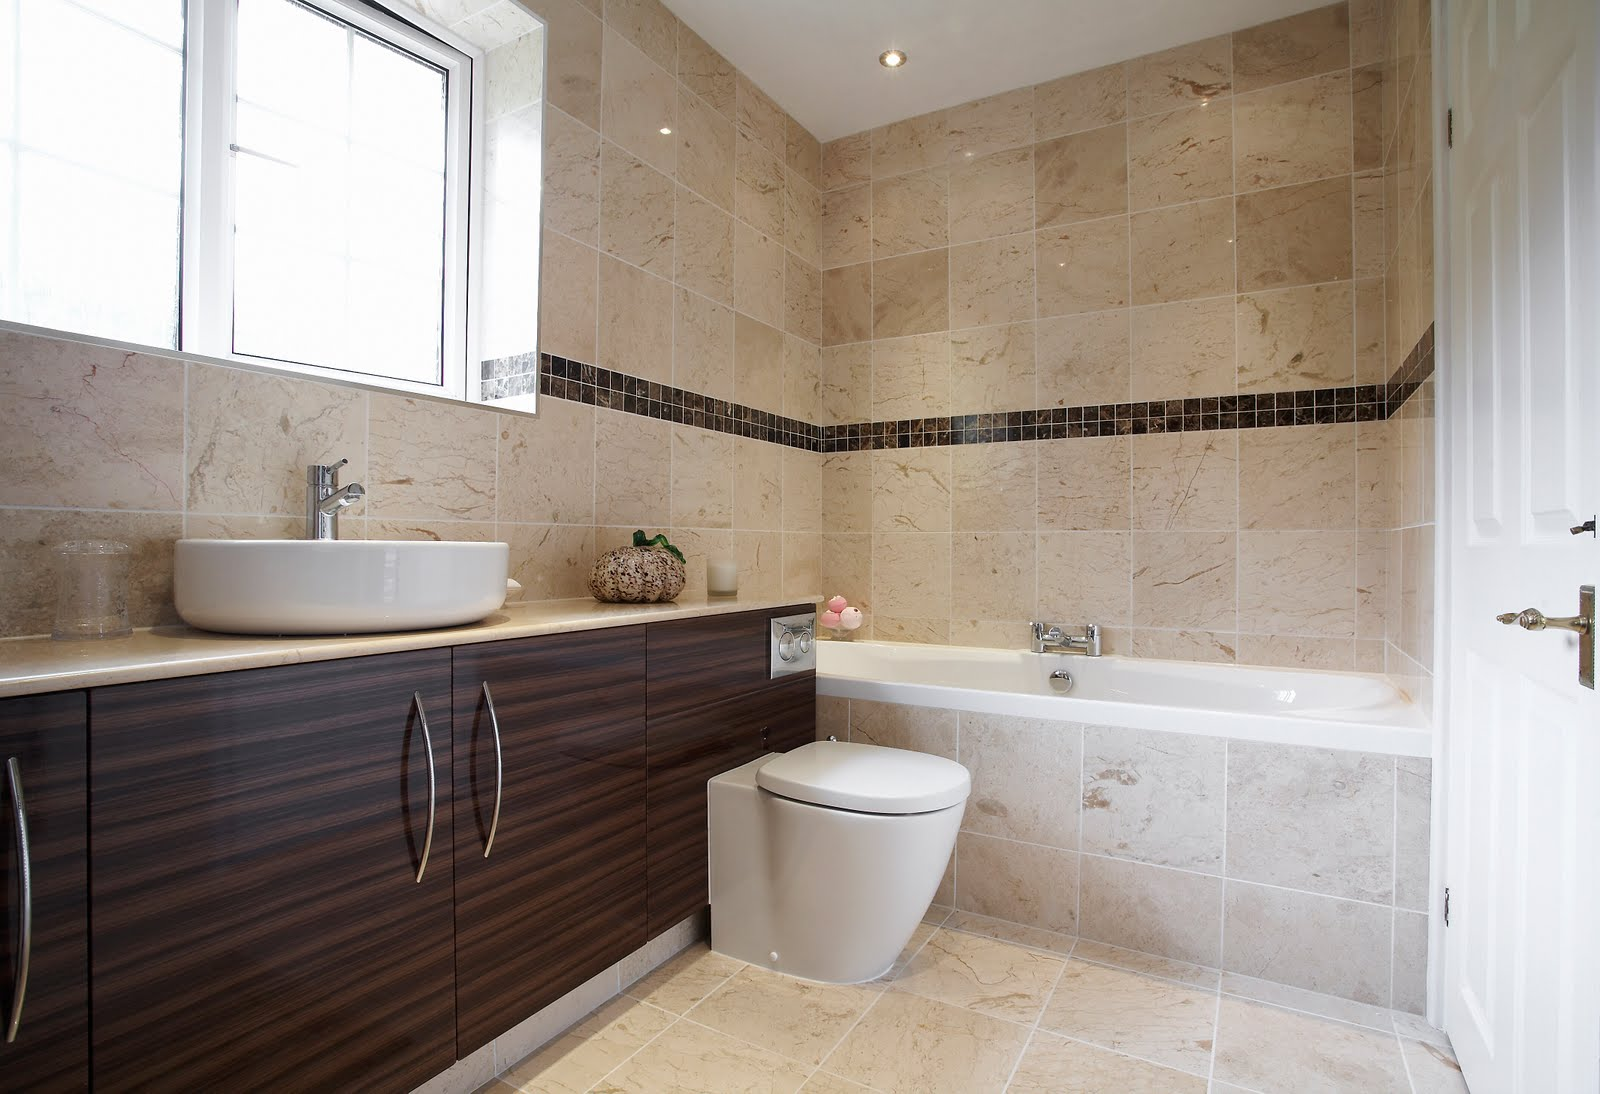 Cymru kitchens ltd cymru kitchens bathrooms for Restroom decoration pictures